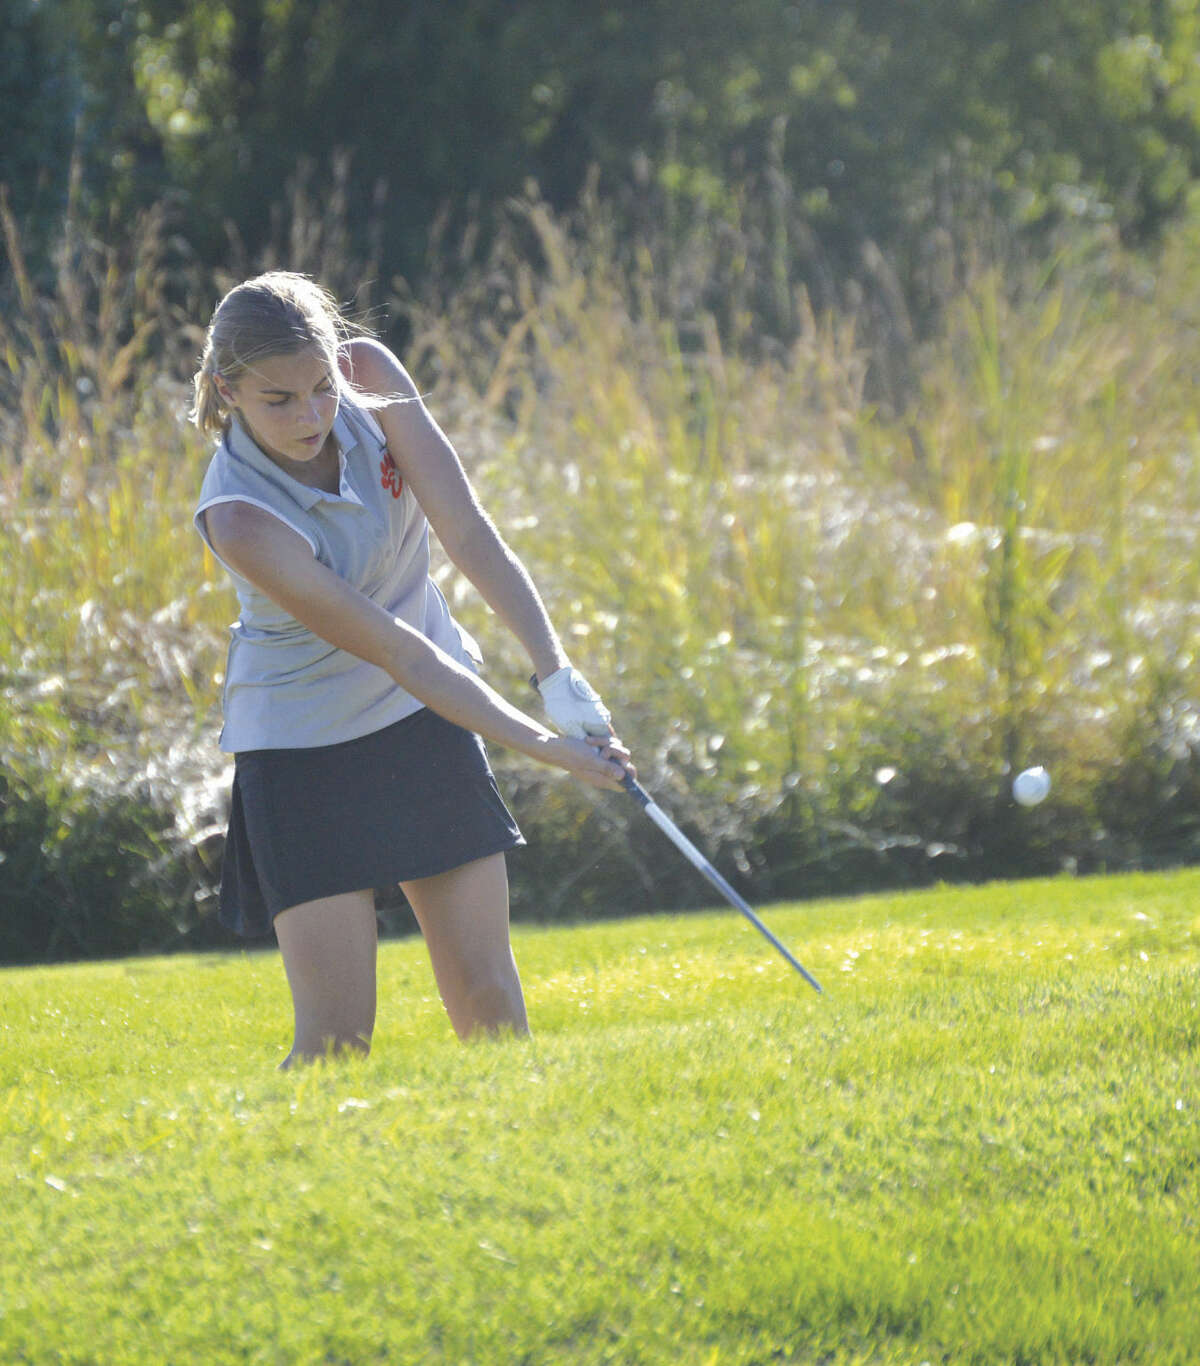 Edwardsville sophomore Meara Schaefer hits her shot out of the bunker and on to the green on hole No. 8 at Arlington Greens Golf Course.